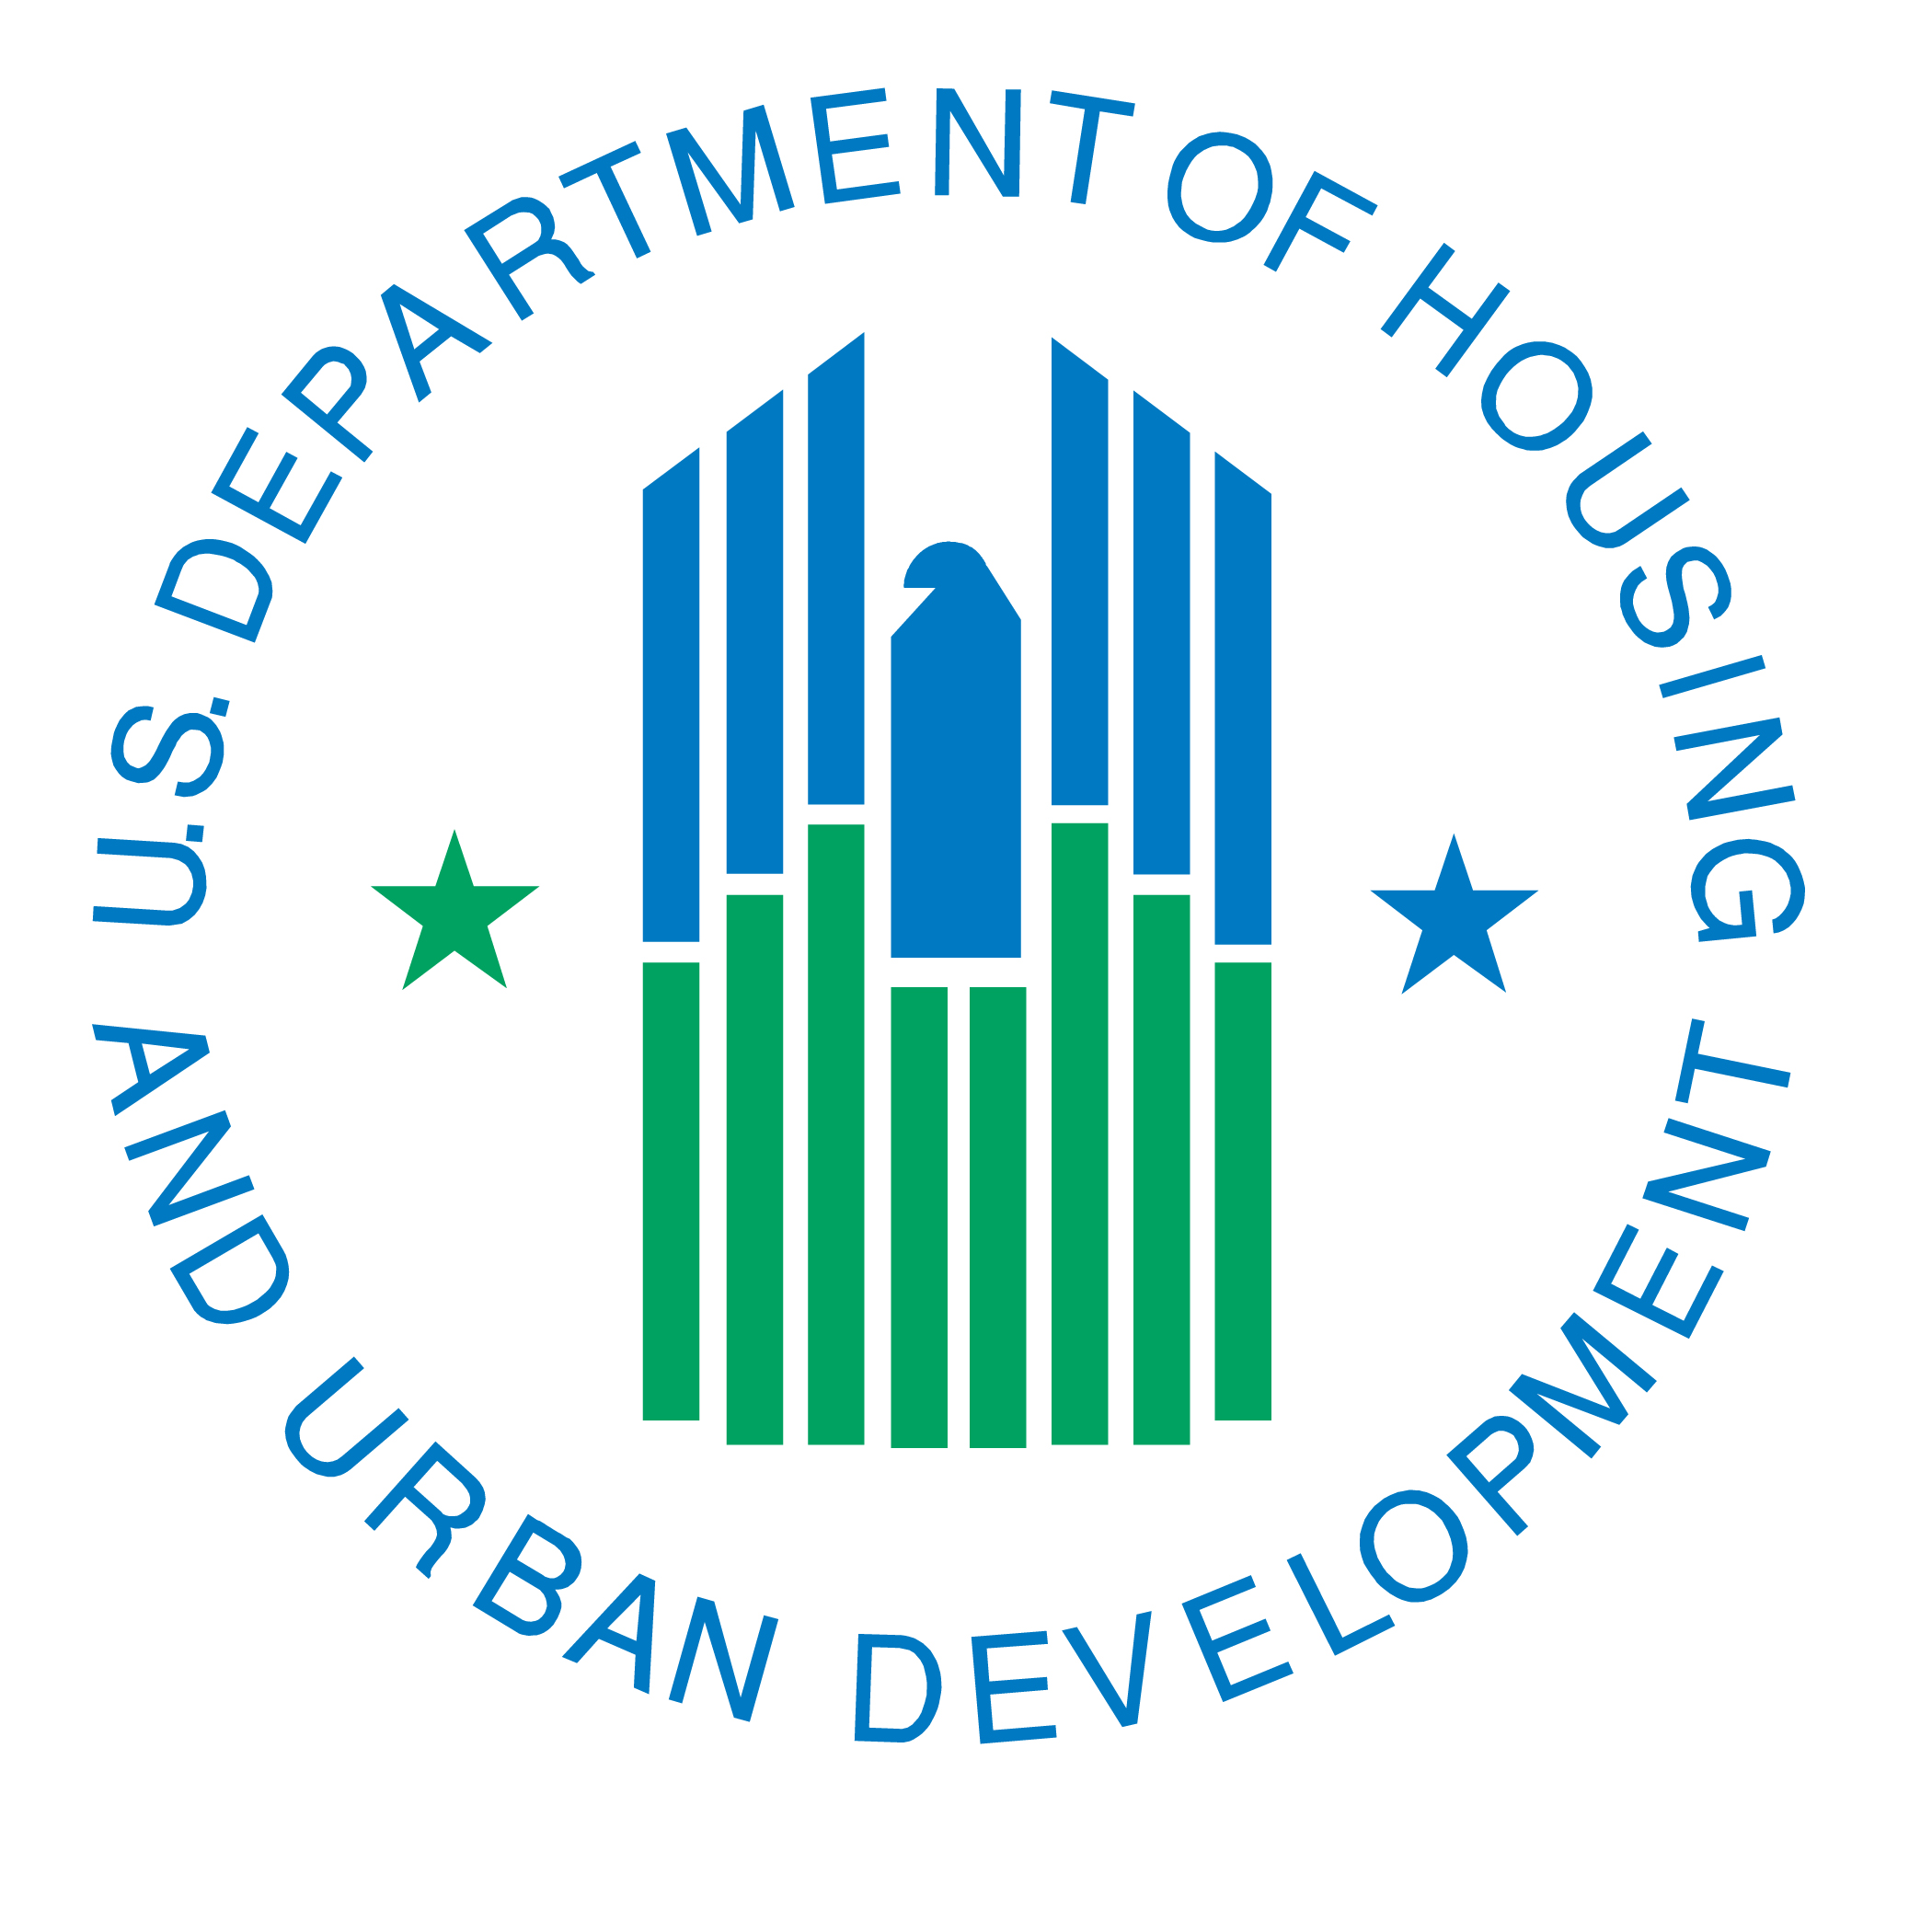 the U.S. Department of Housing and Urban Development logo.